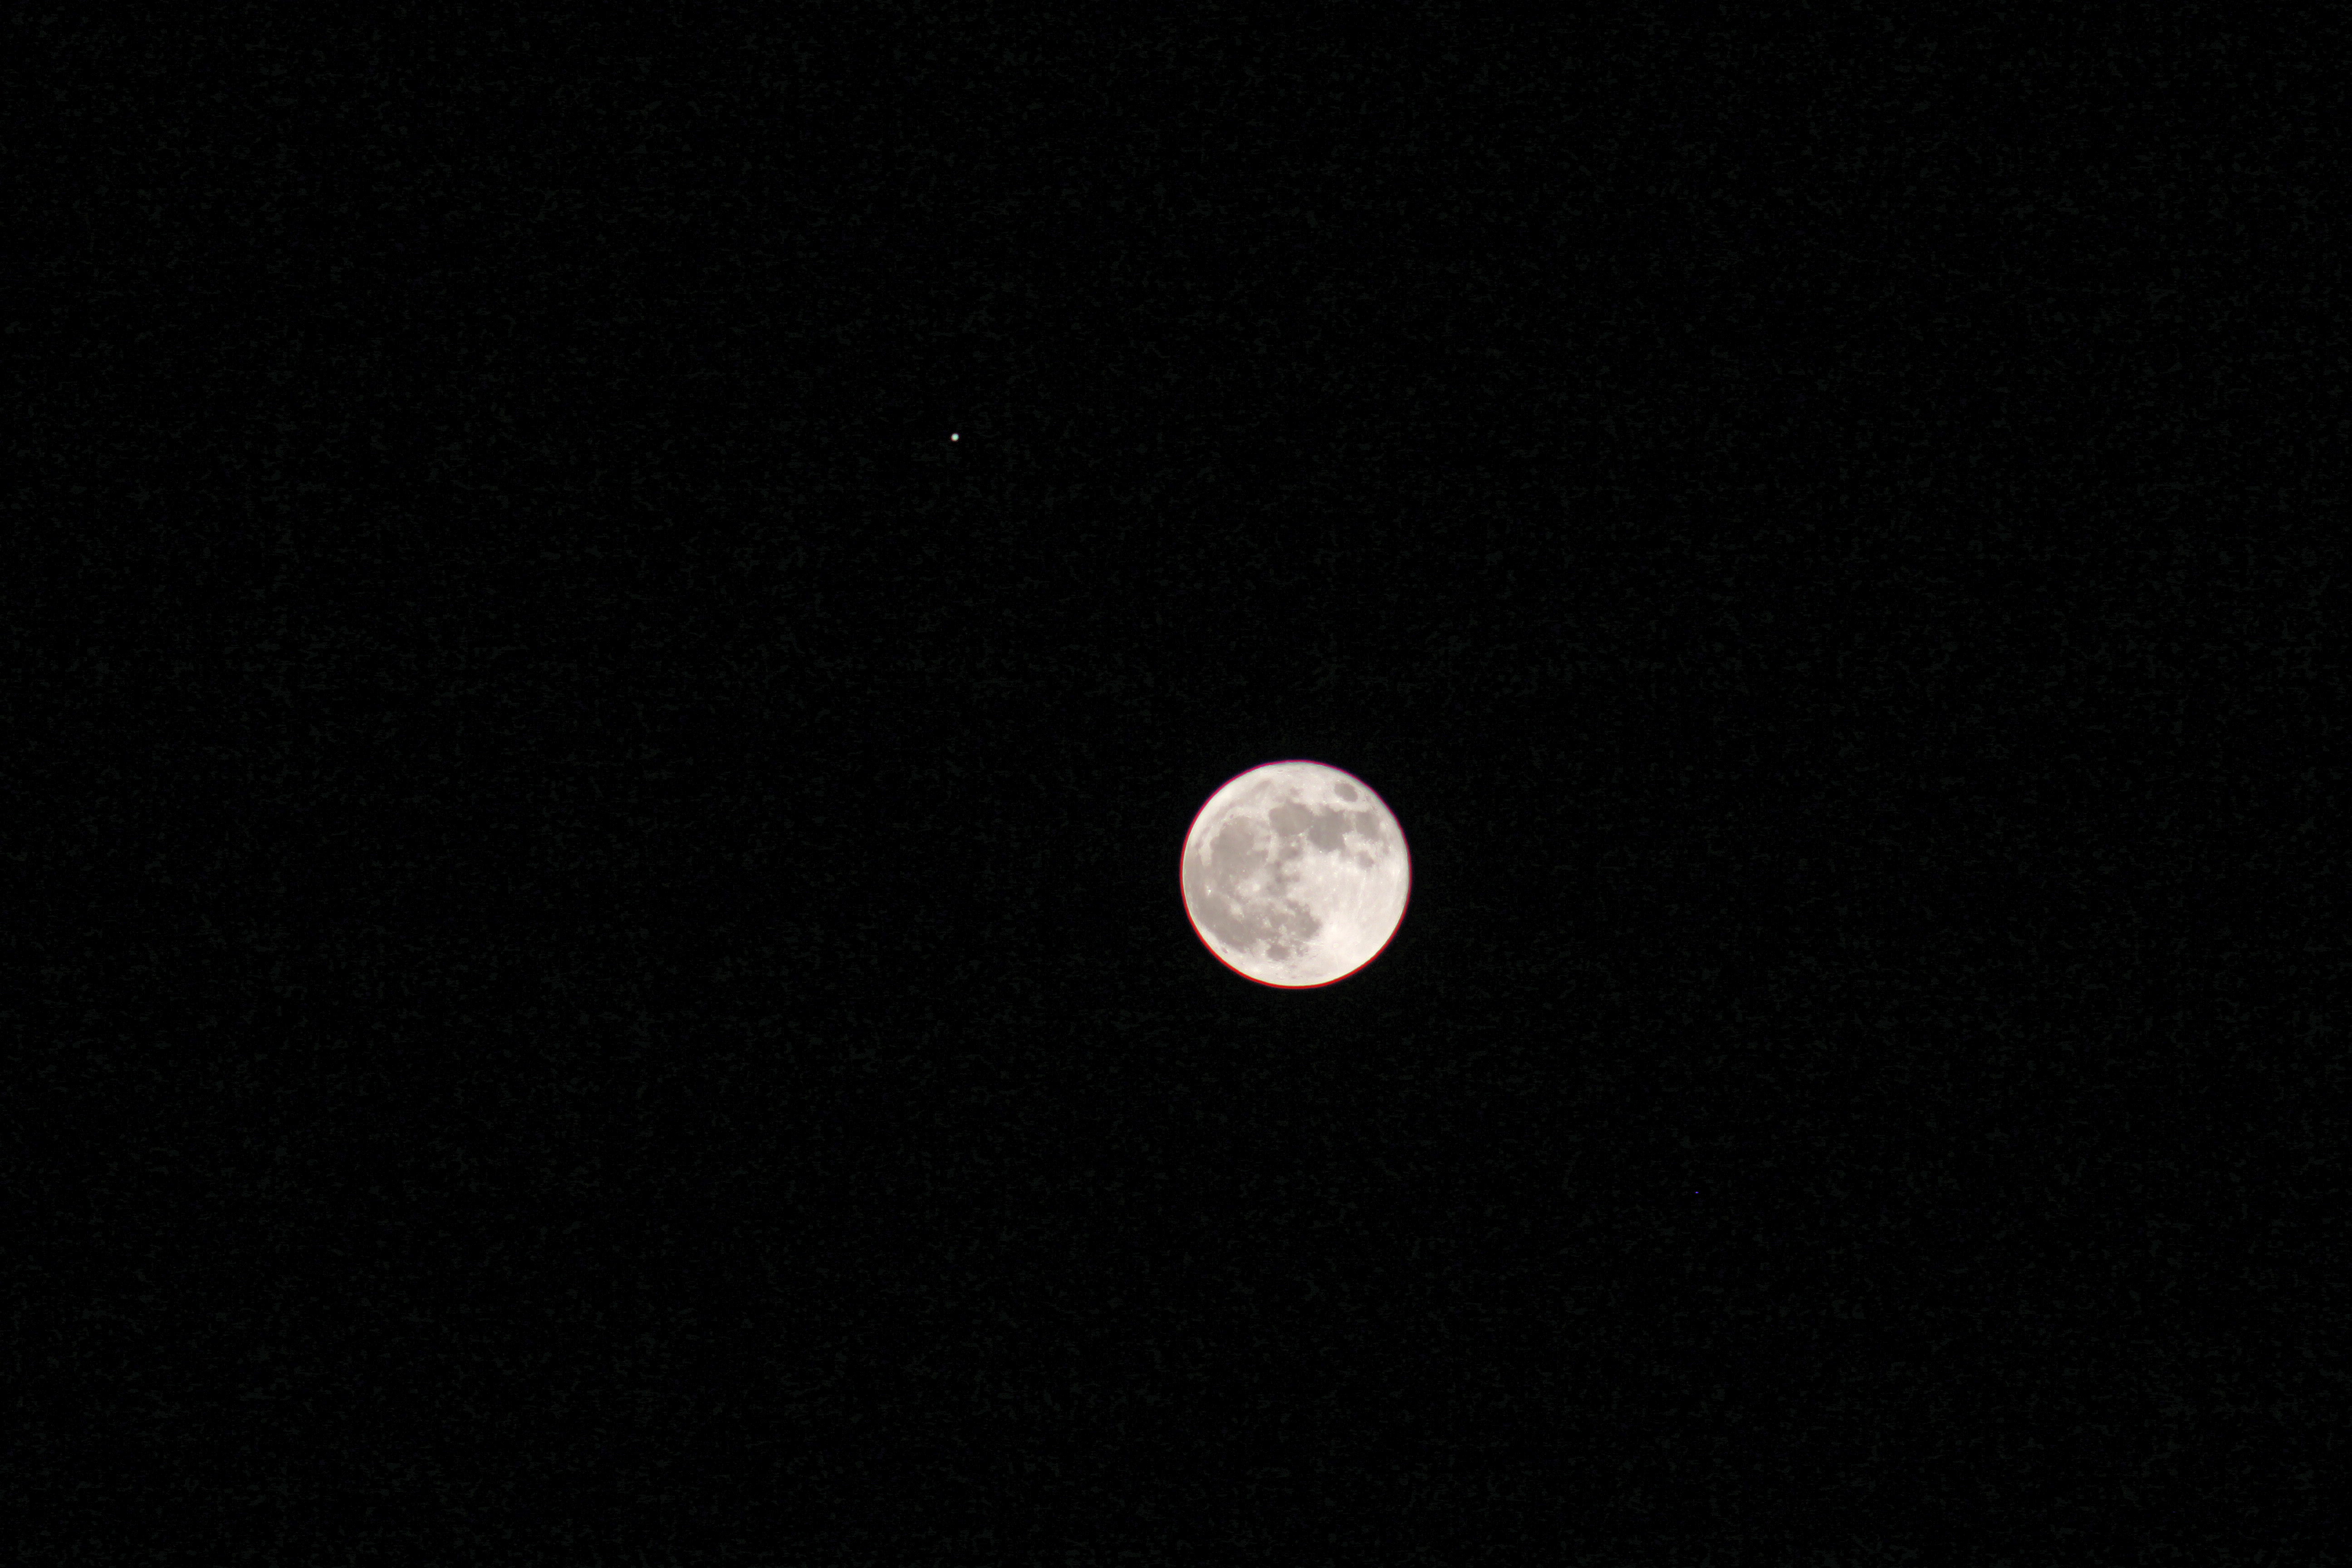 Jupiter and the moon in conjunction 11-28-12 - Astronomy